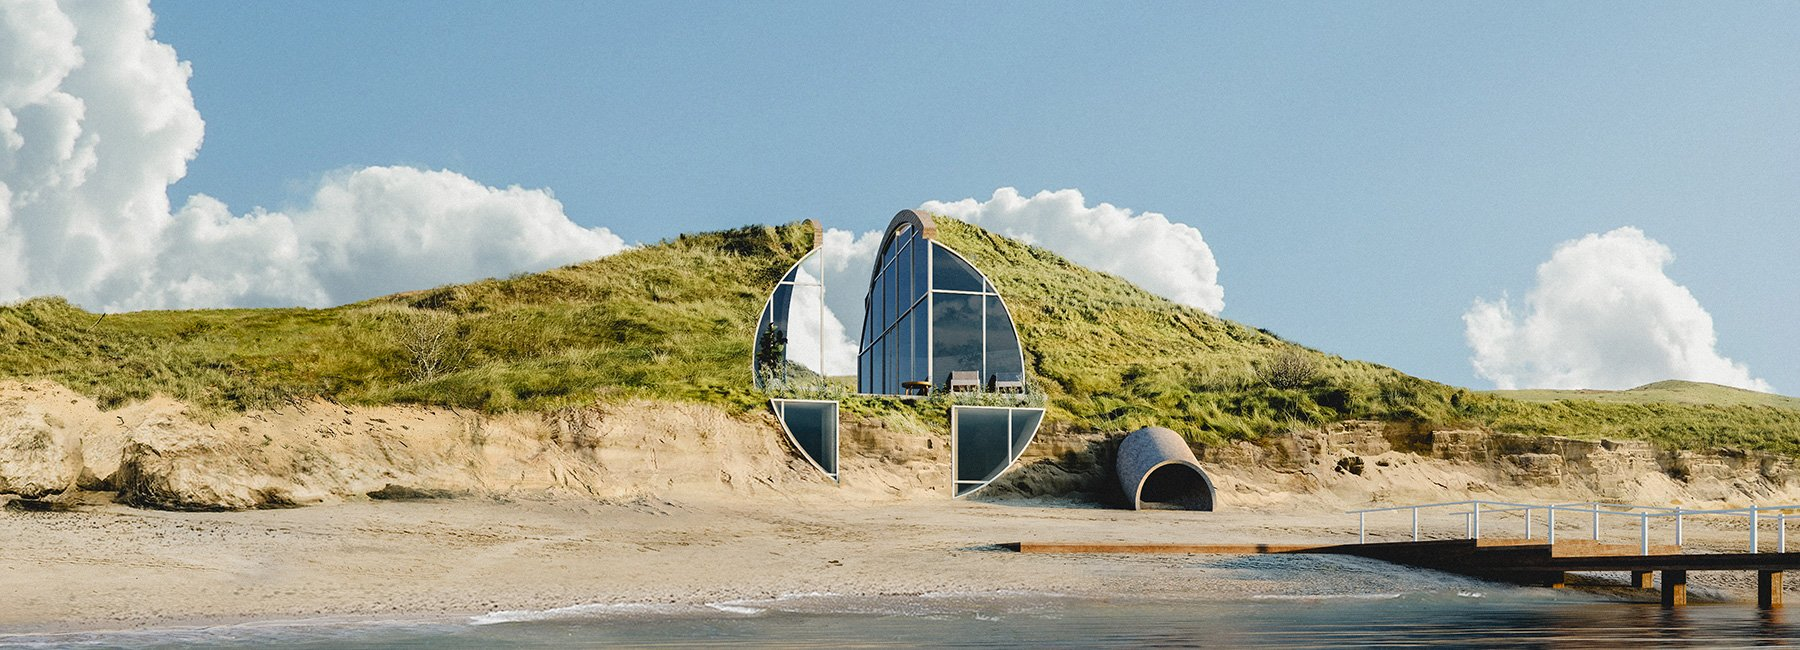 Self-sustainable, off-the-grid dune house